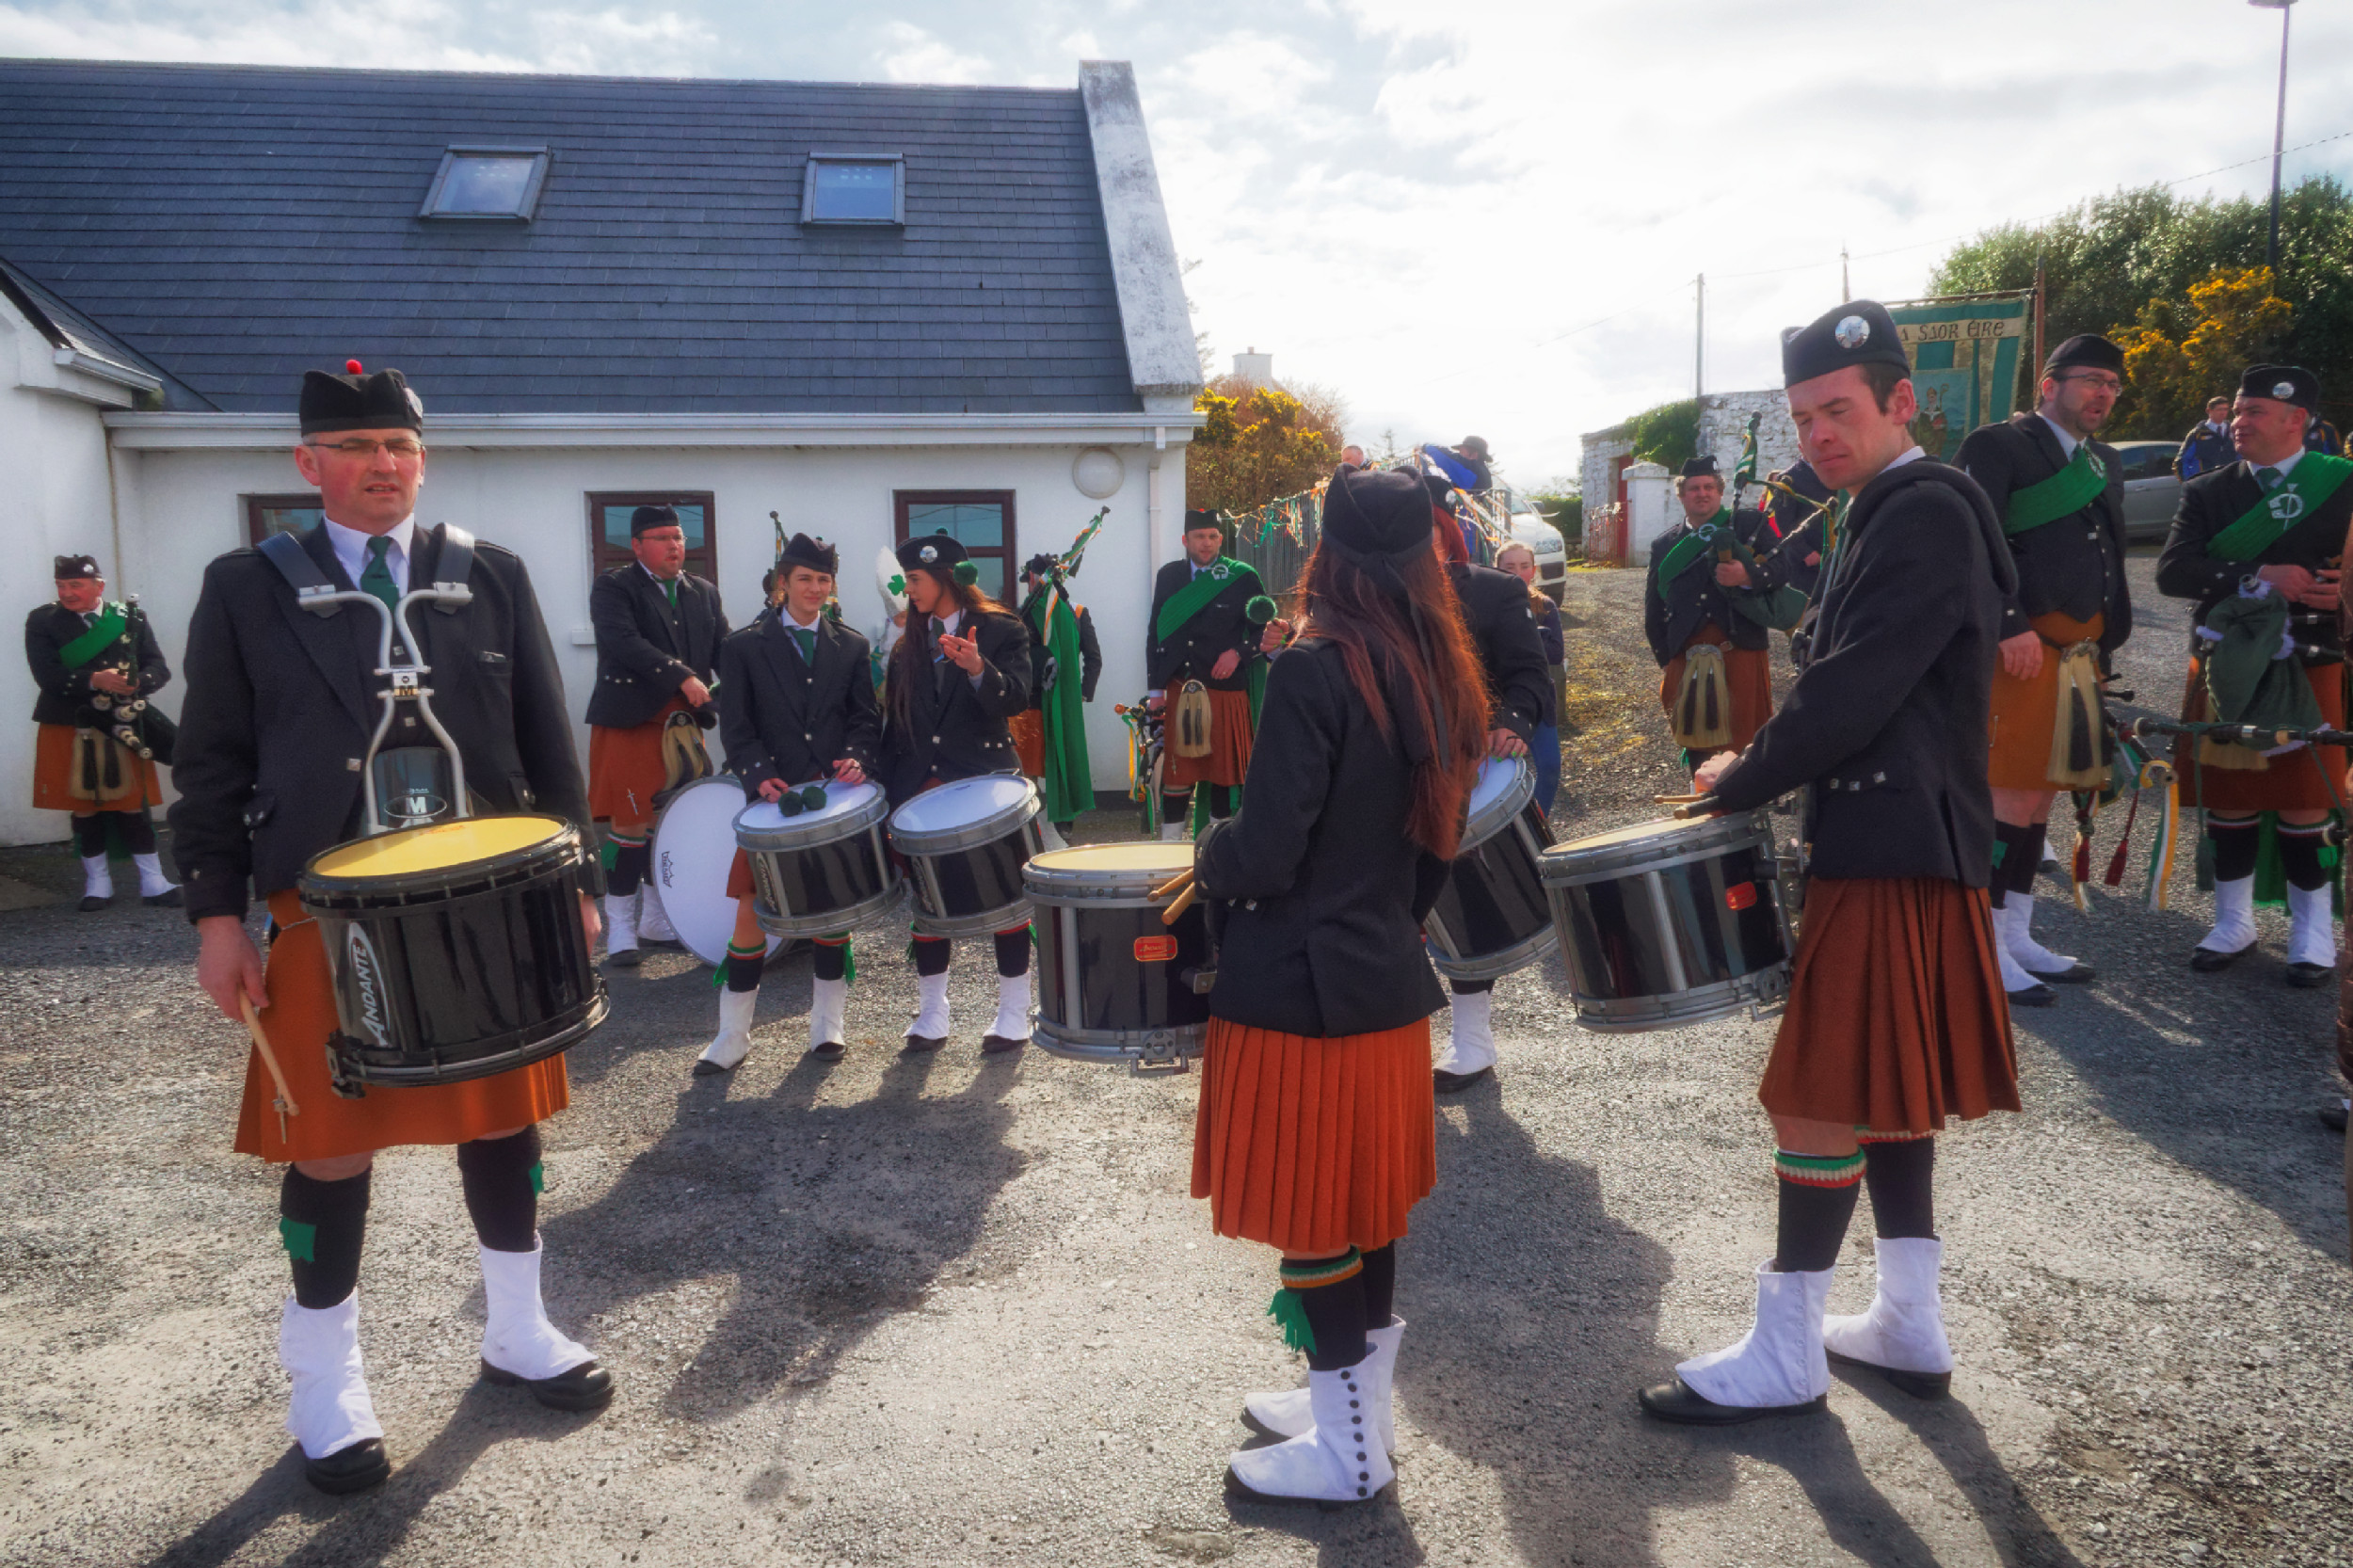 20160320131459-ie-achill-sound_parade-_DxO_13in_DxO96